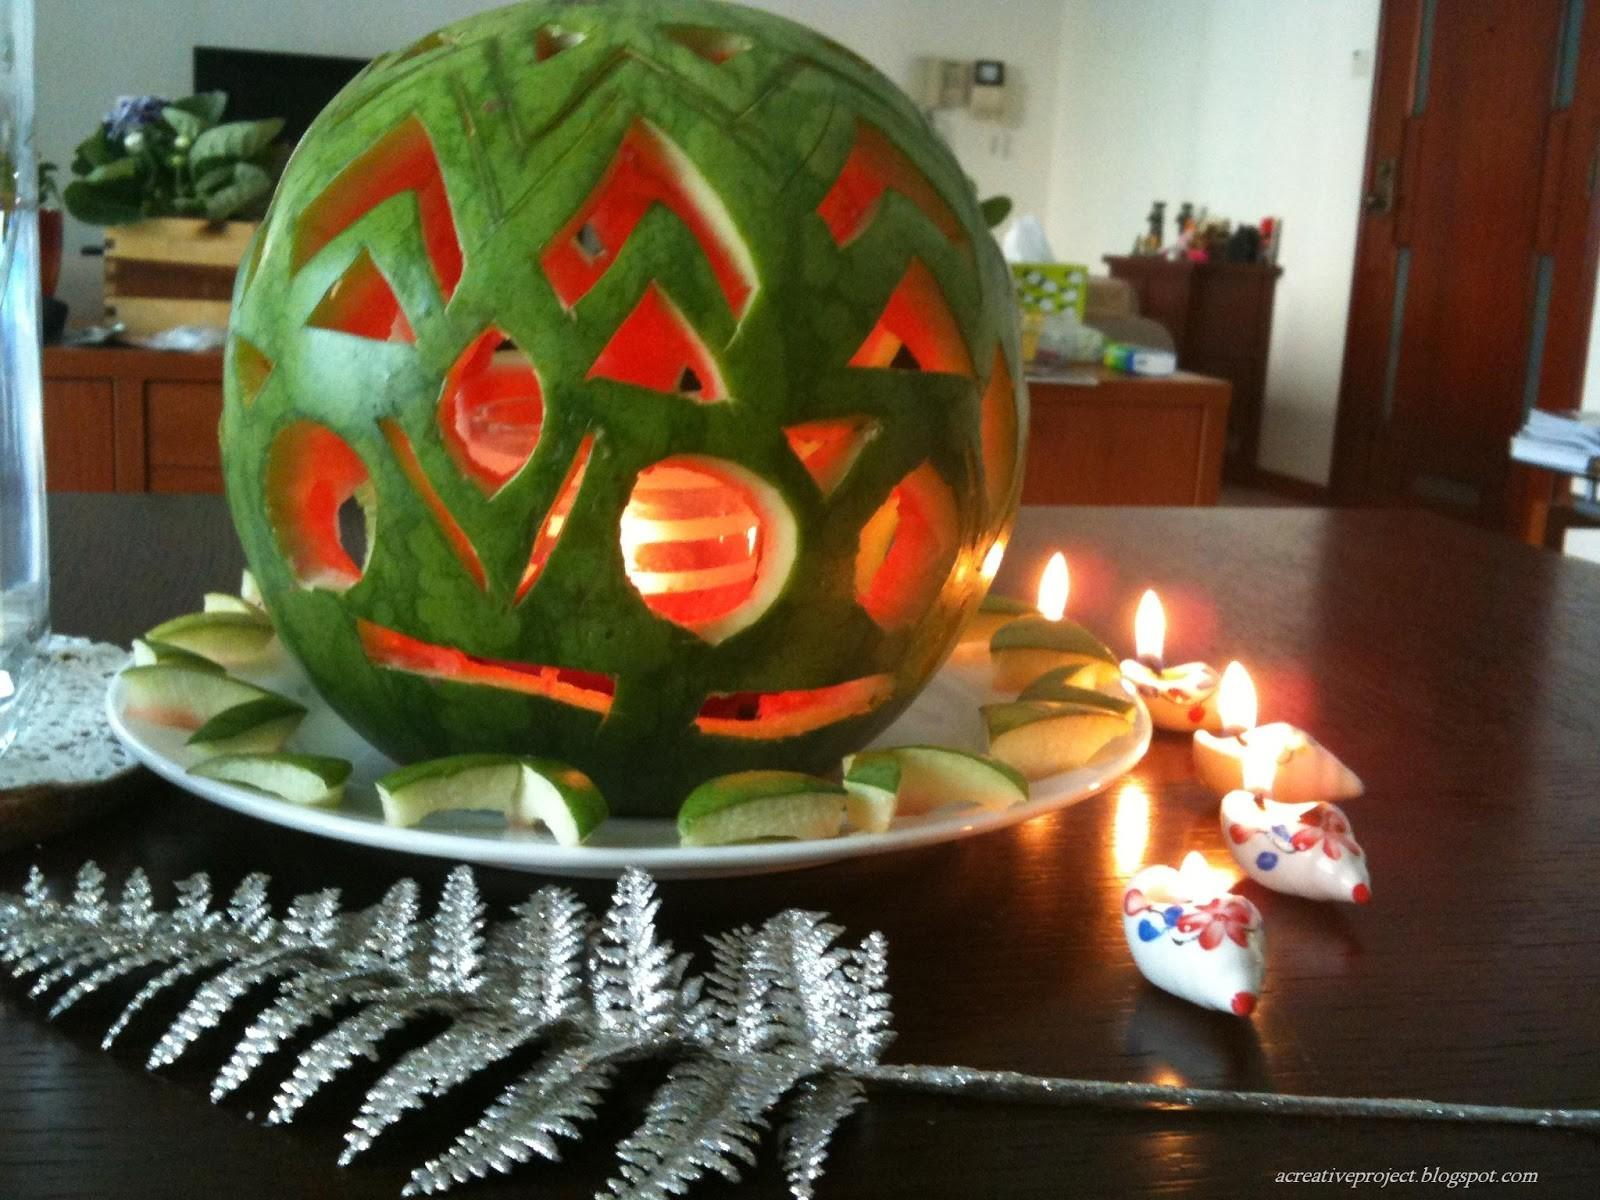 Creative Project Diwali Themed Table Decor